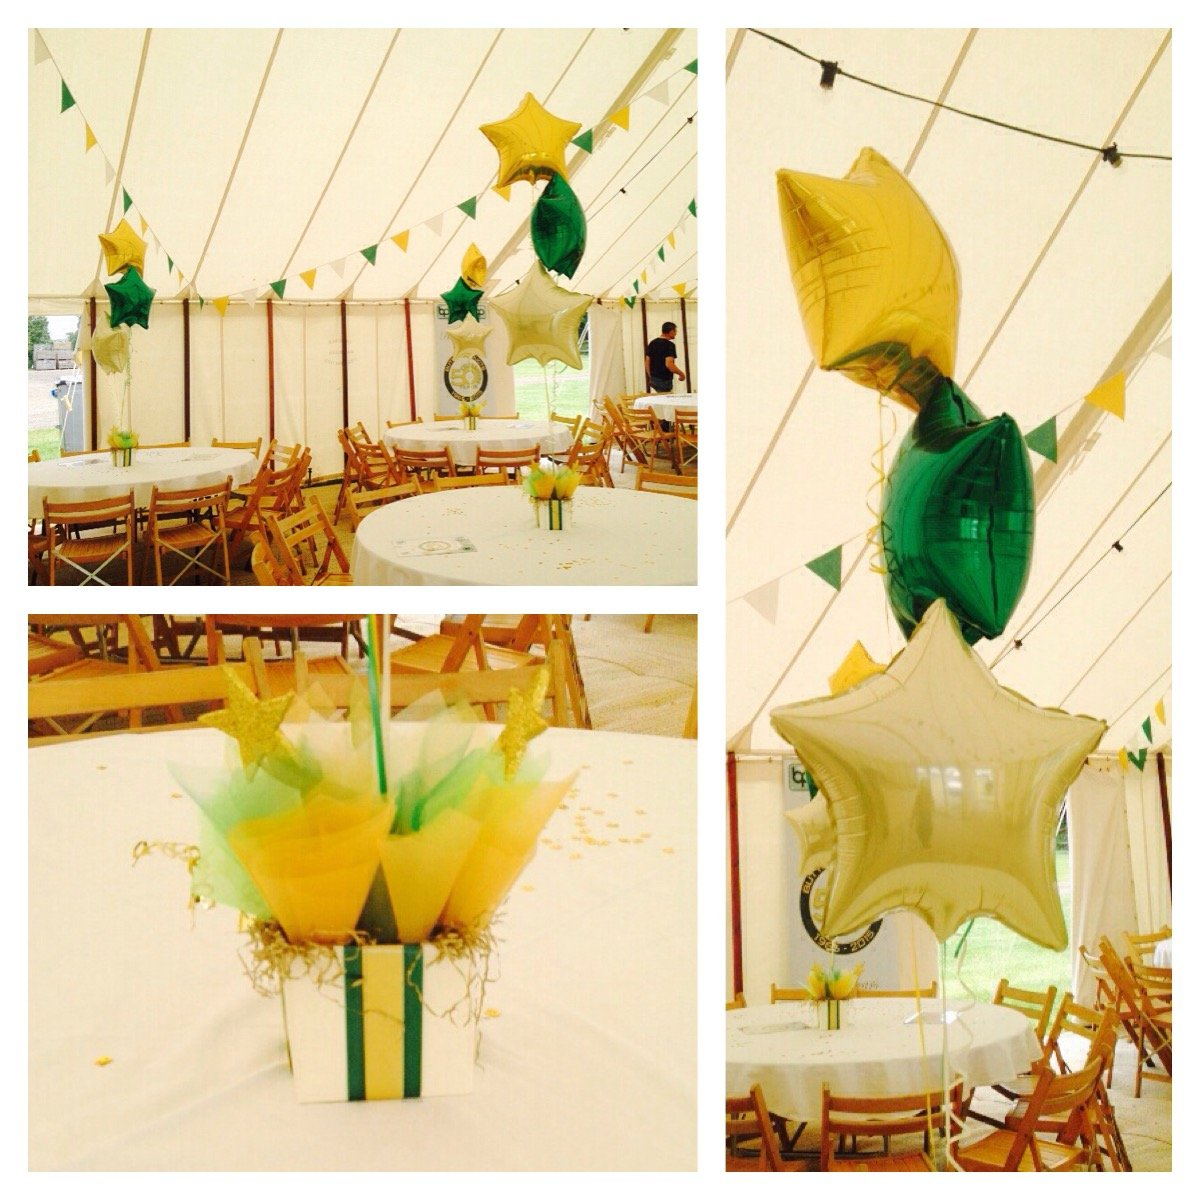 Party balloons at Barleylands Craft Village in marquee